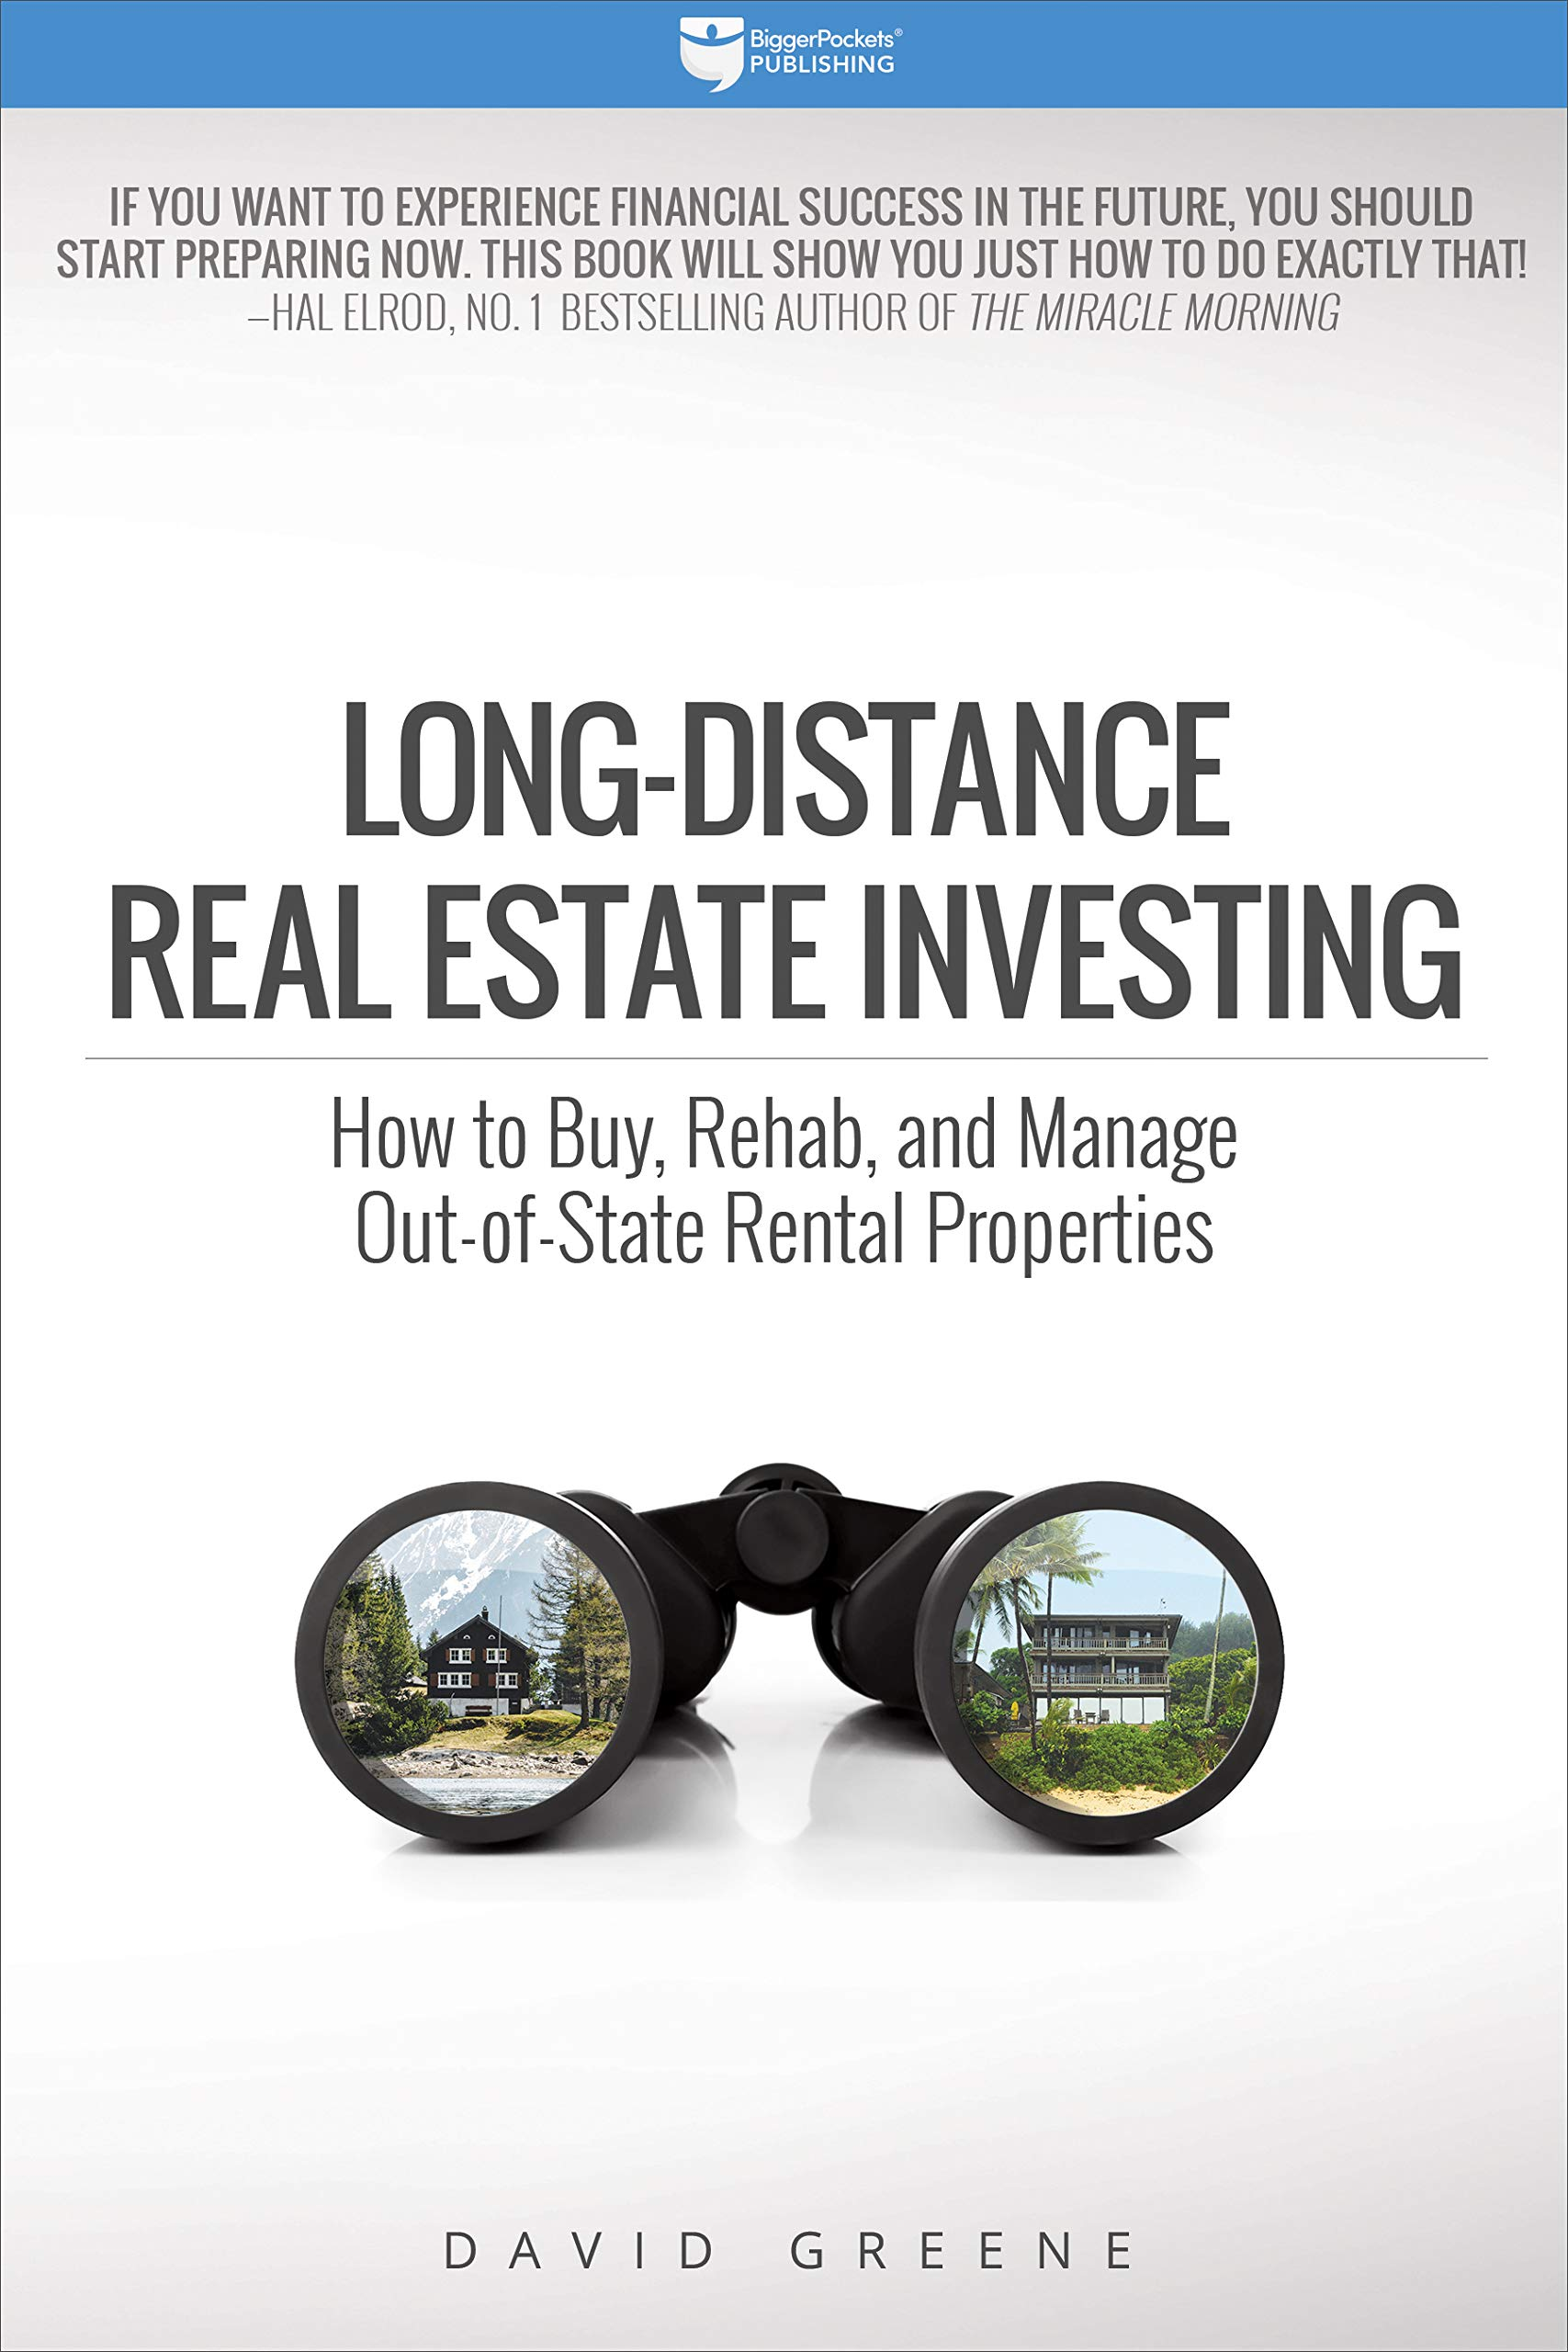 Long-Distance Real Estate Investing: How to Buy, Rehab, and Manage Out-of-State Rental Properties by BiggerPockets